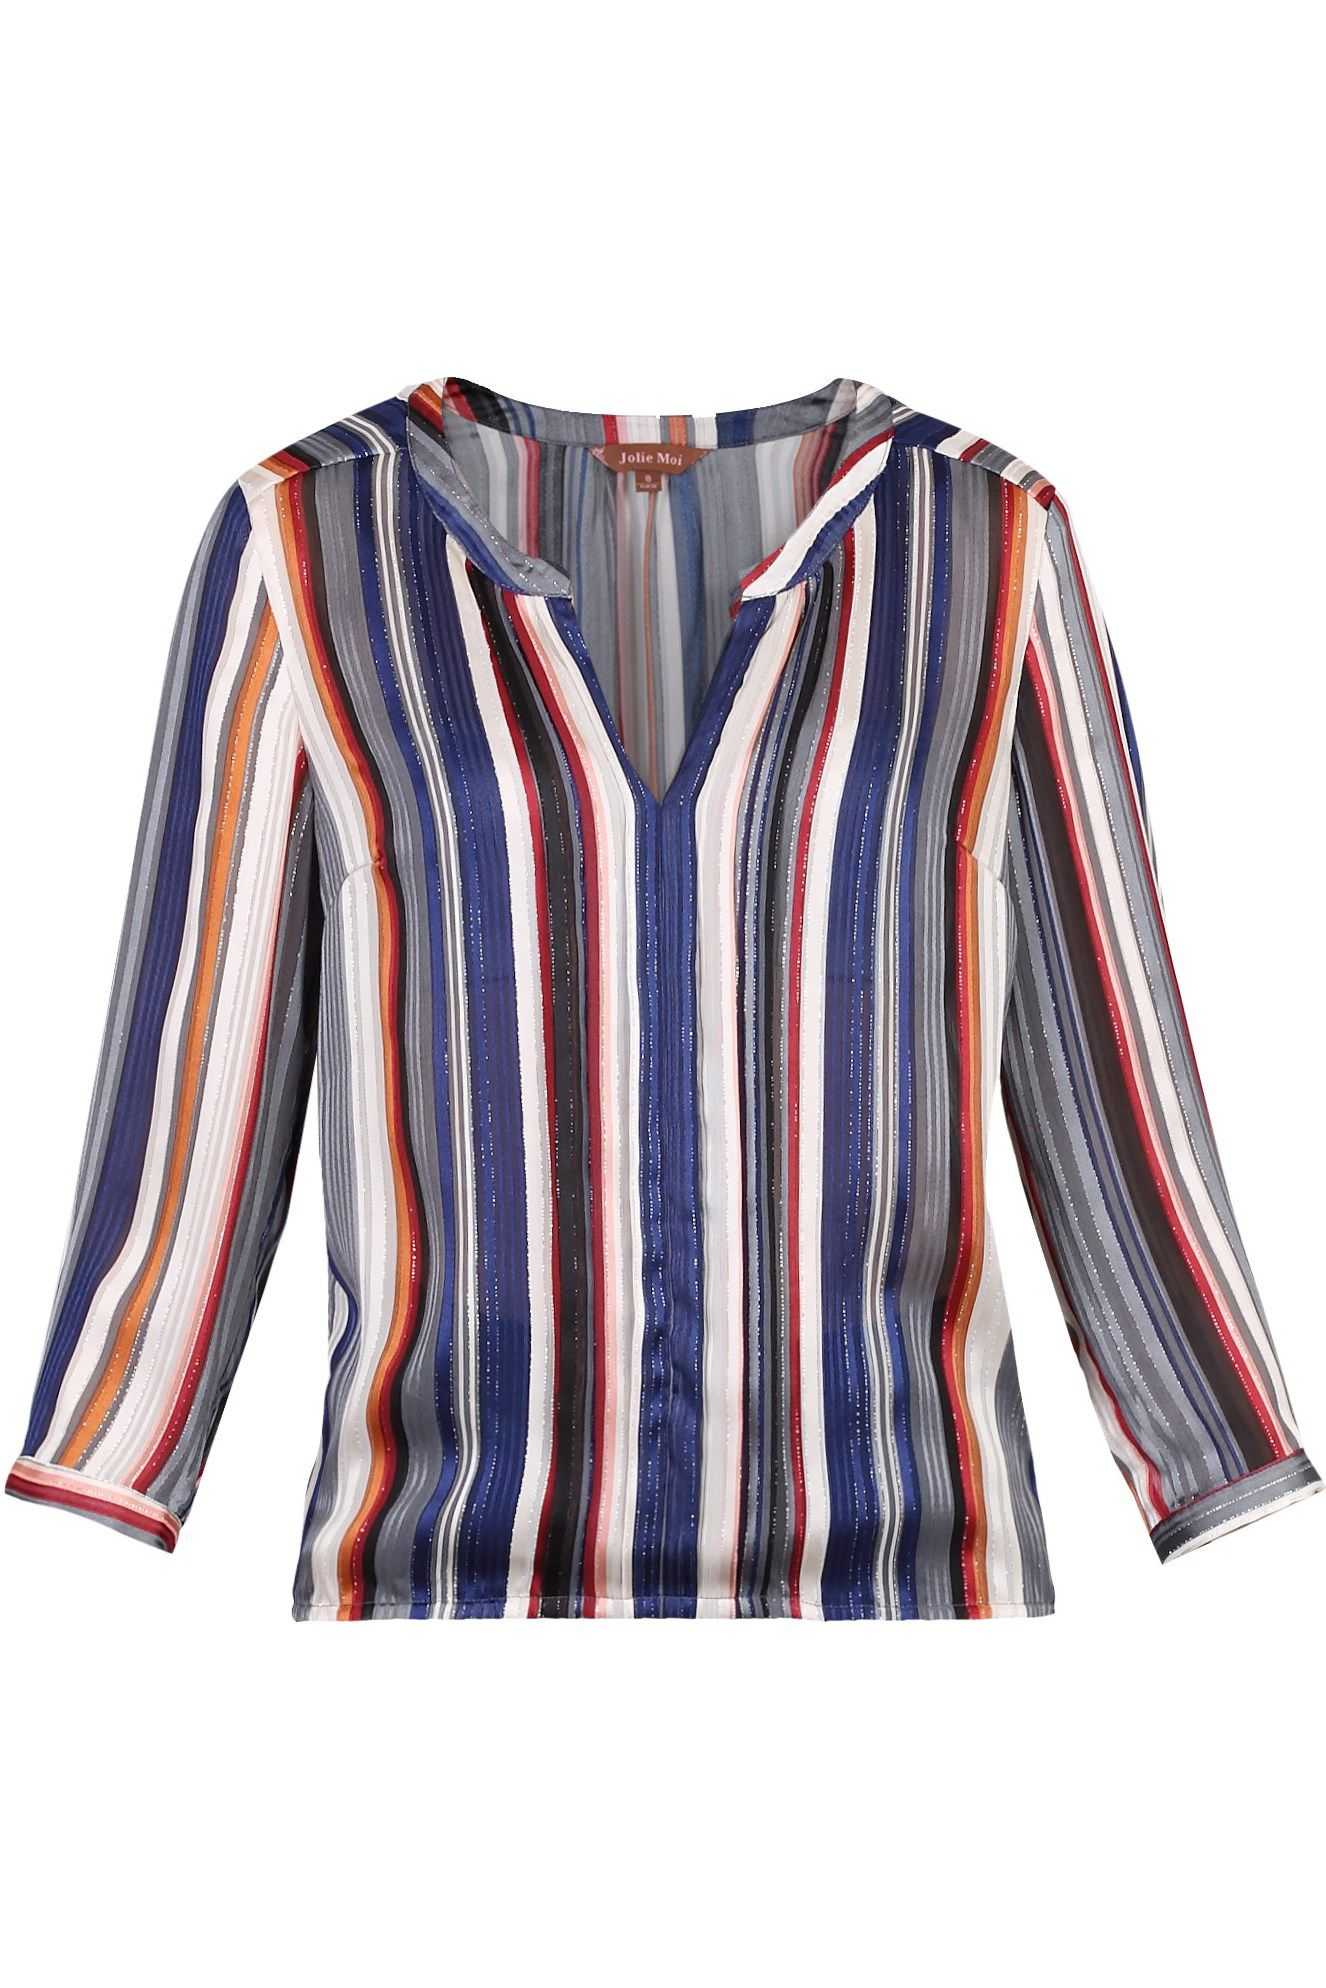 Jolie Moi Striped  Pleat Detail Blouse, Blue